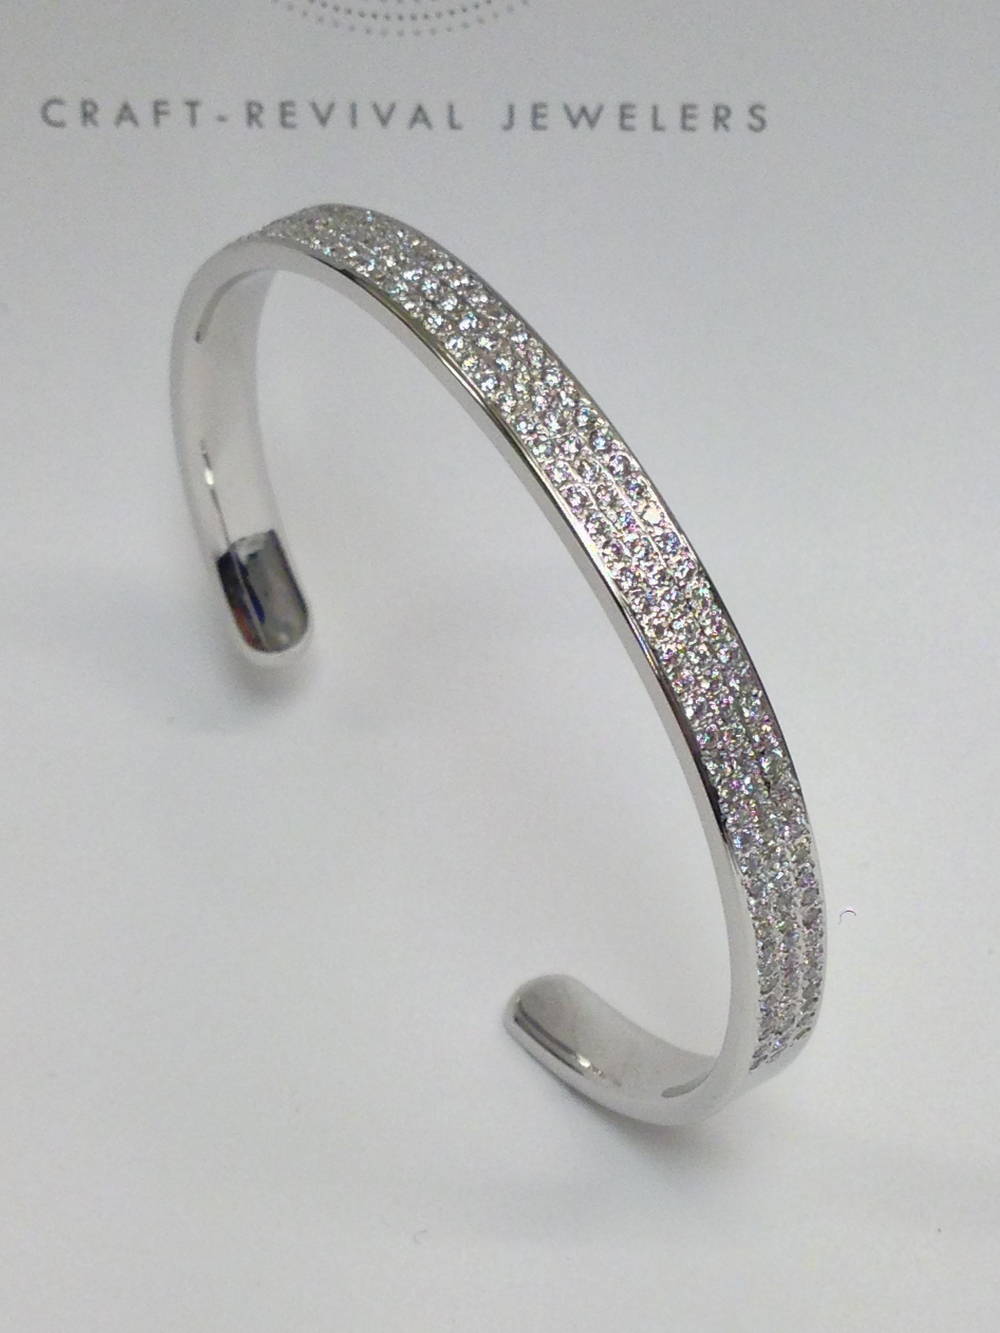 unique-white-gold-diamond-bangle-craft-revival-jewelry-store-grand-rapids-michigan